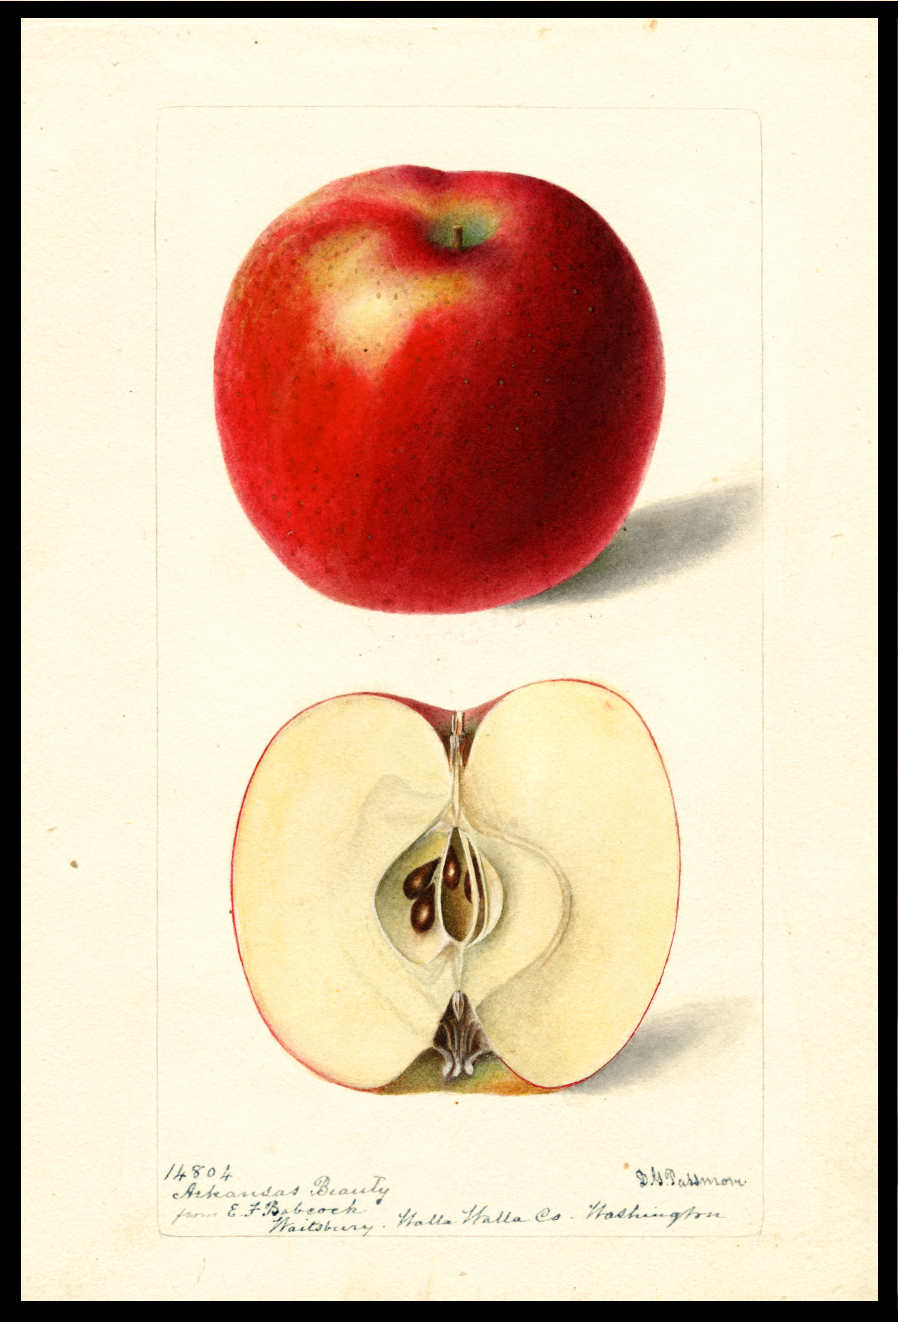 watercolor of an apple that appears almost entirely red